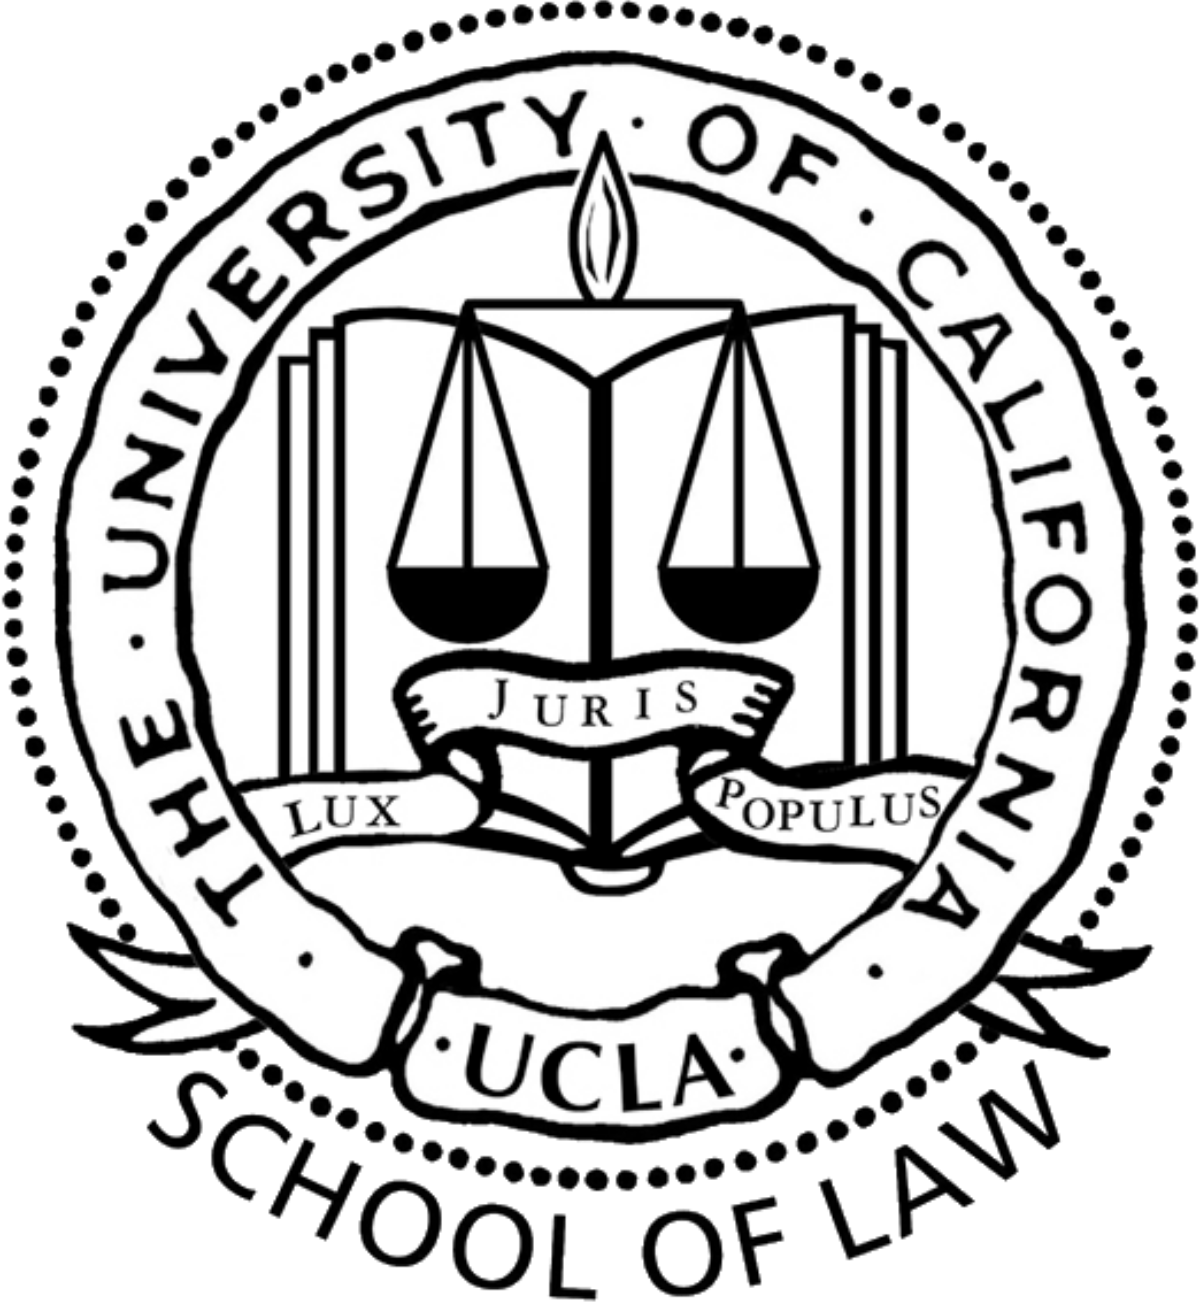 black and white Laws clipart law school. Ucla of wikipedia .